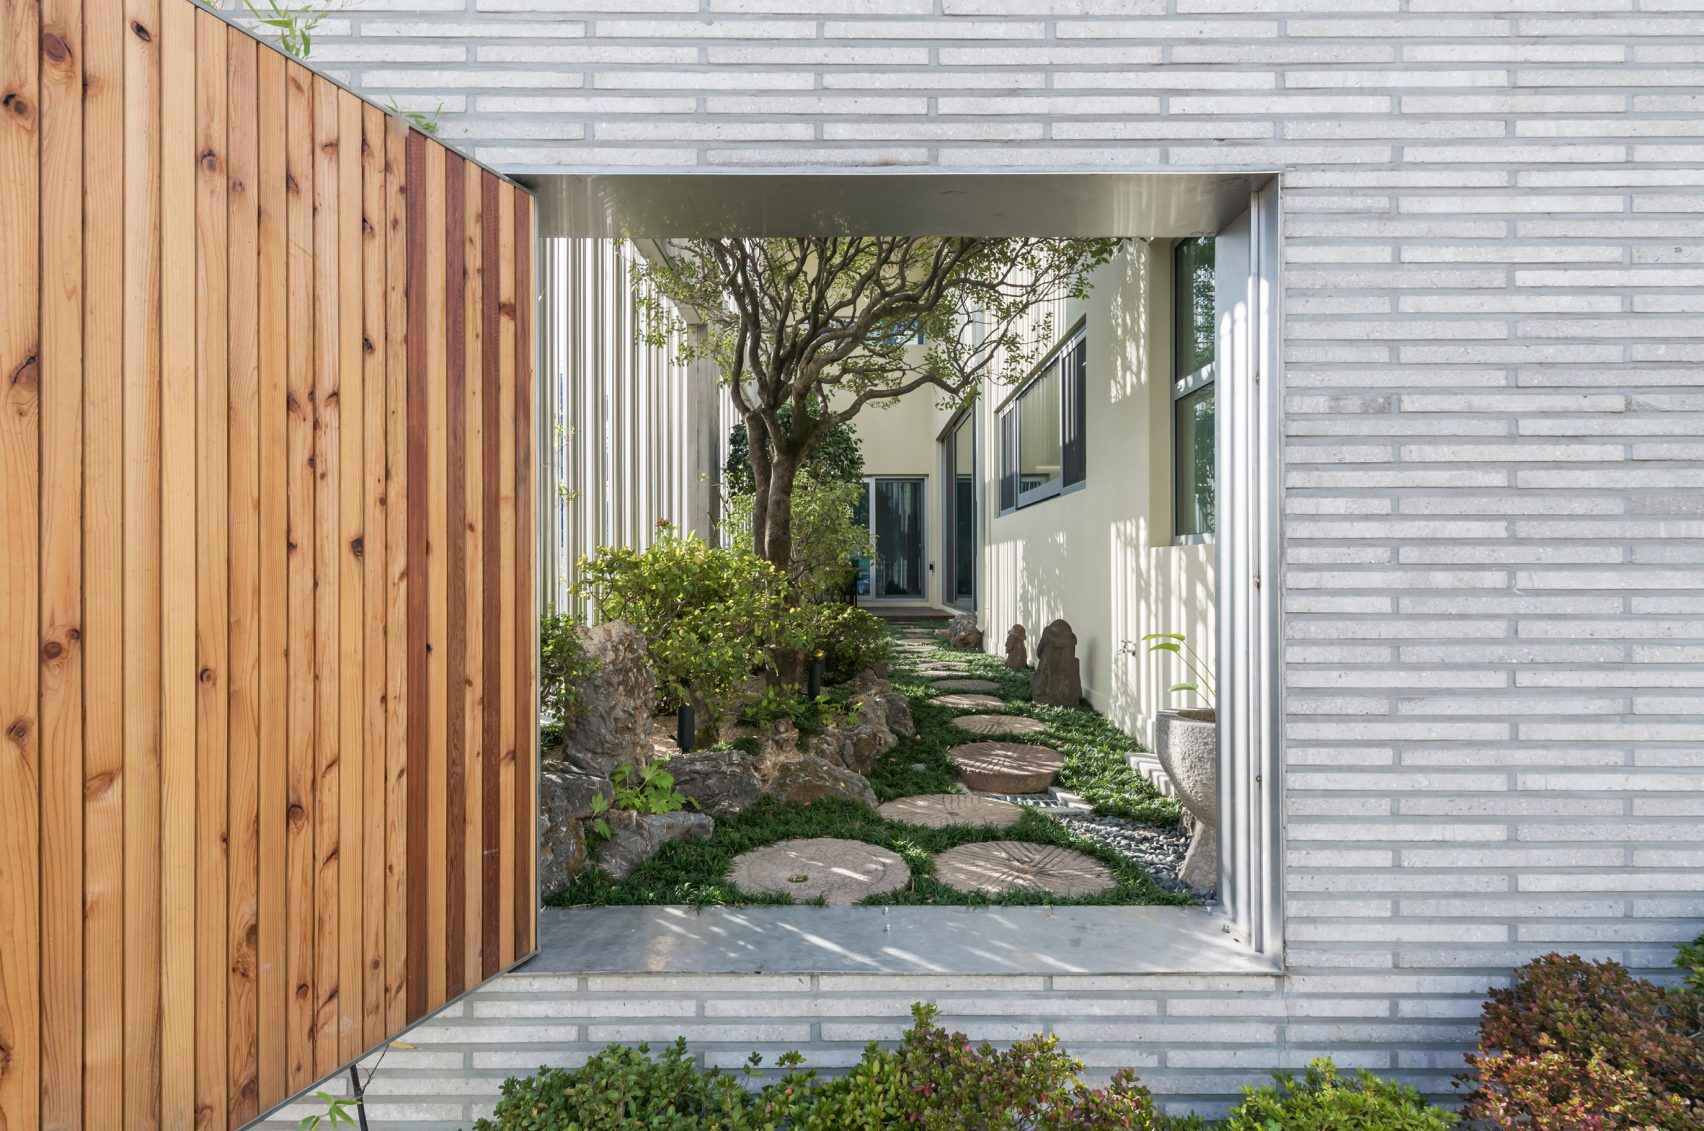 steel-grove-augmented-reality-architecture-residential-south-korea-courtyards-steel_dezeen_2364_col_24-1704x1131.jpg